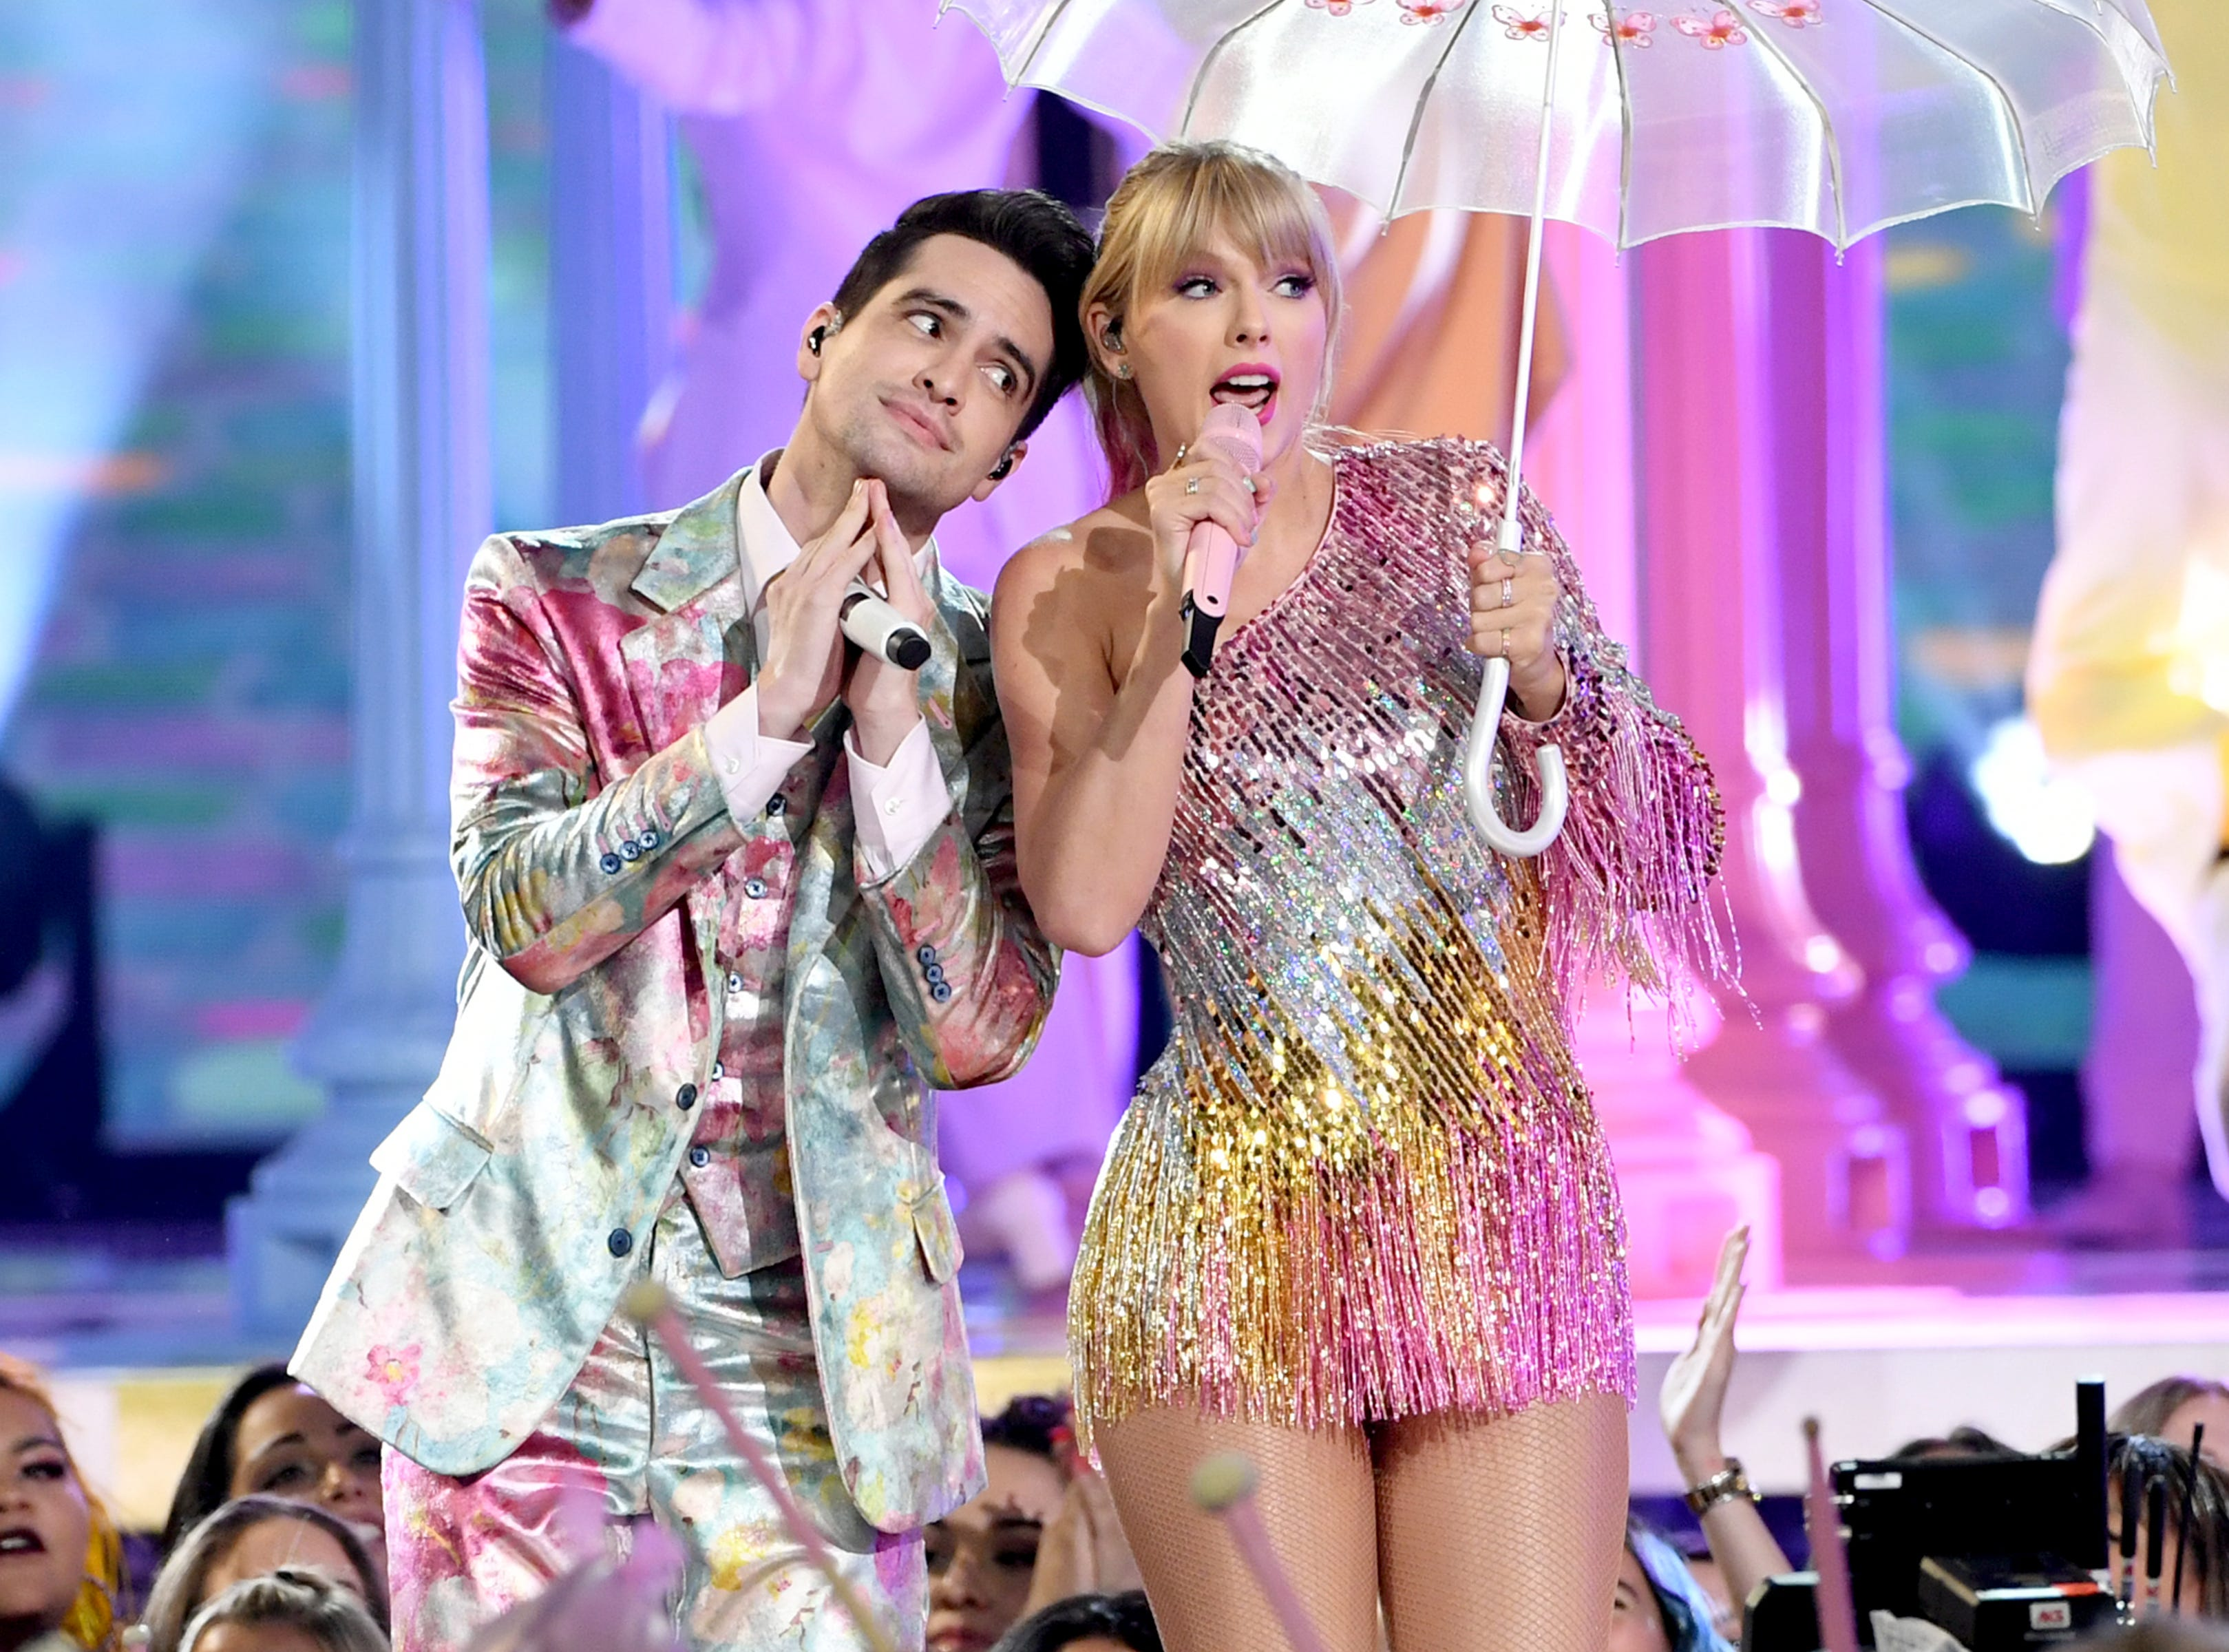 (L-R) Brendon Urie of Panic! at the Disco and Taylor Swift perform onstage during the 2019 Billboard Music Awards at MGM Grand Garden Arena on May 01, 2019 in Las Vegas, Nevada.